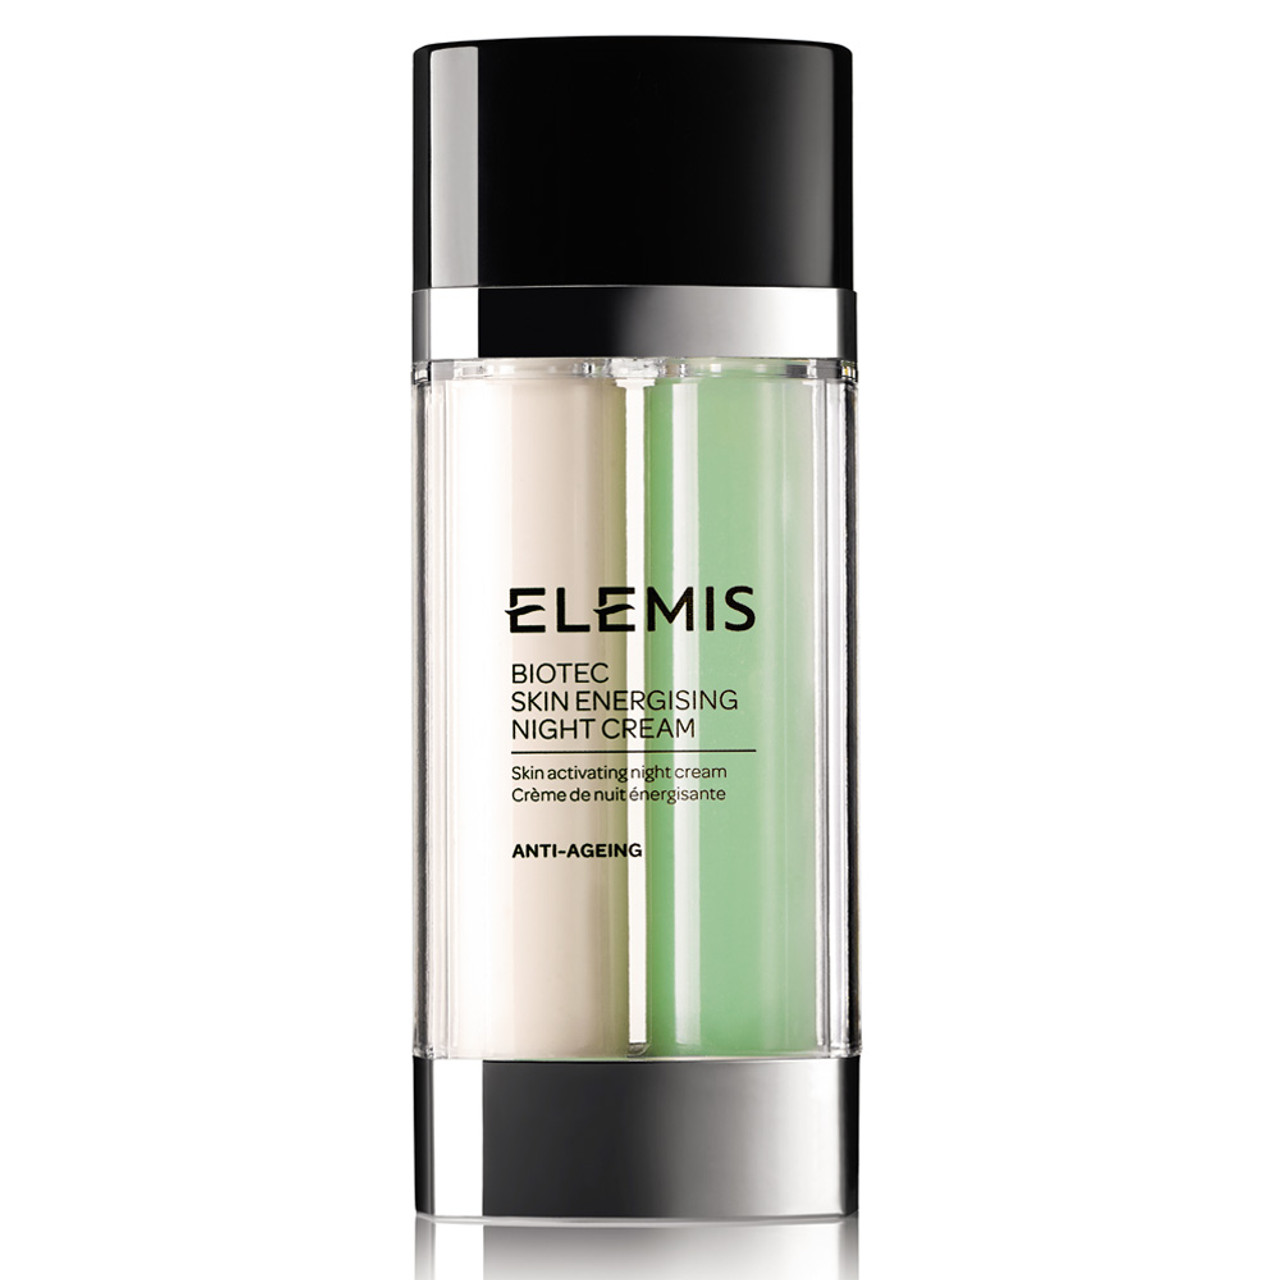 Elemis BIOTEC Skin Energising Night Cream